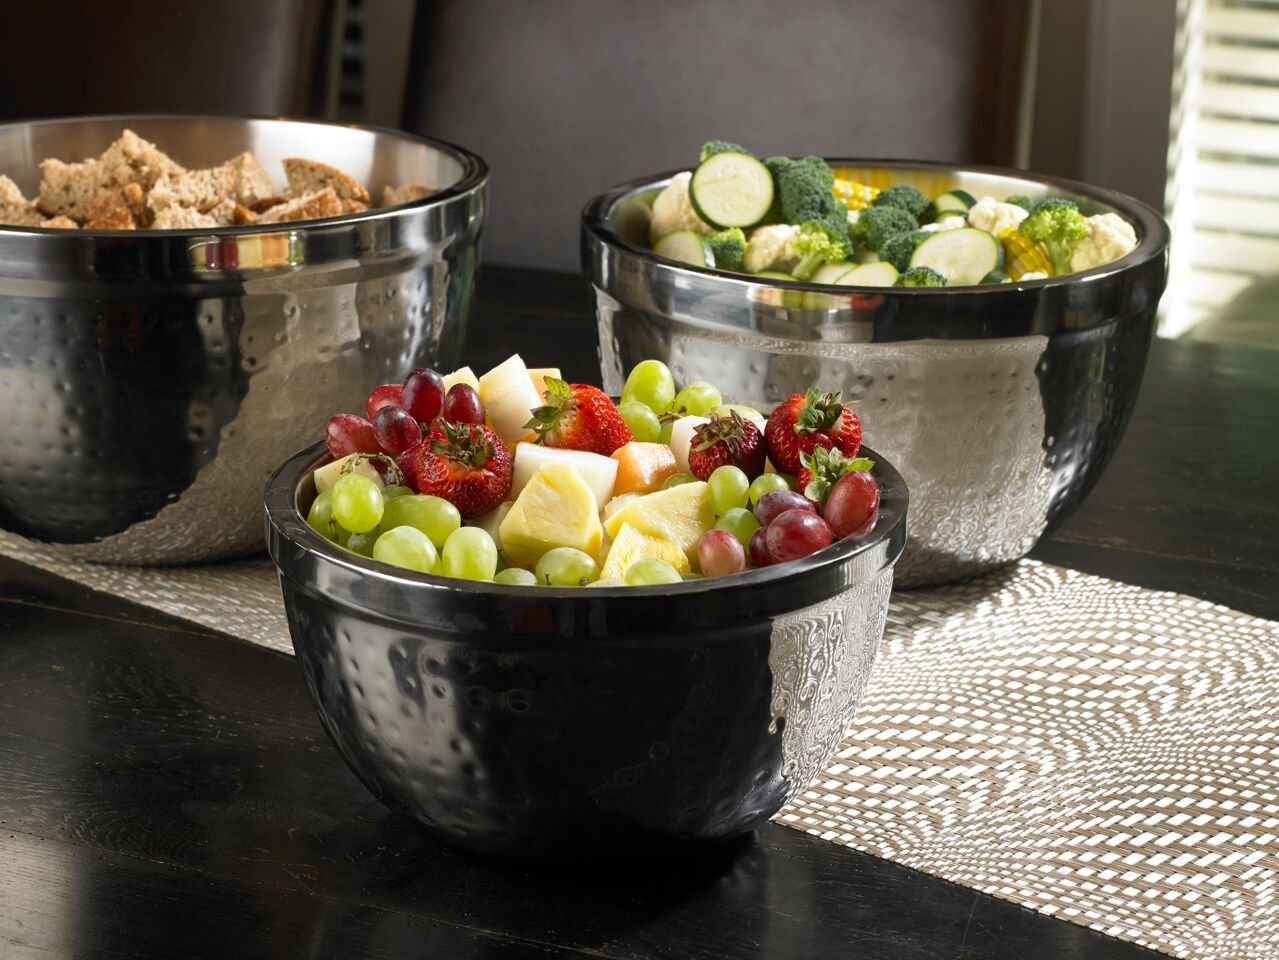 Artisan Insulated, Double-Wall Stainless Steel Serving Bowl, 8-Quart Capacity by Artisan (Image #6)